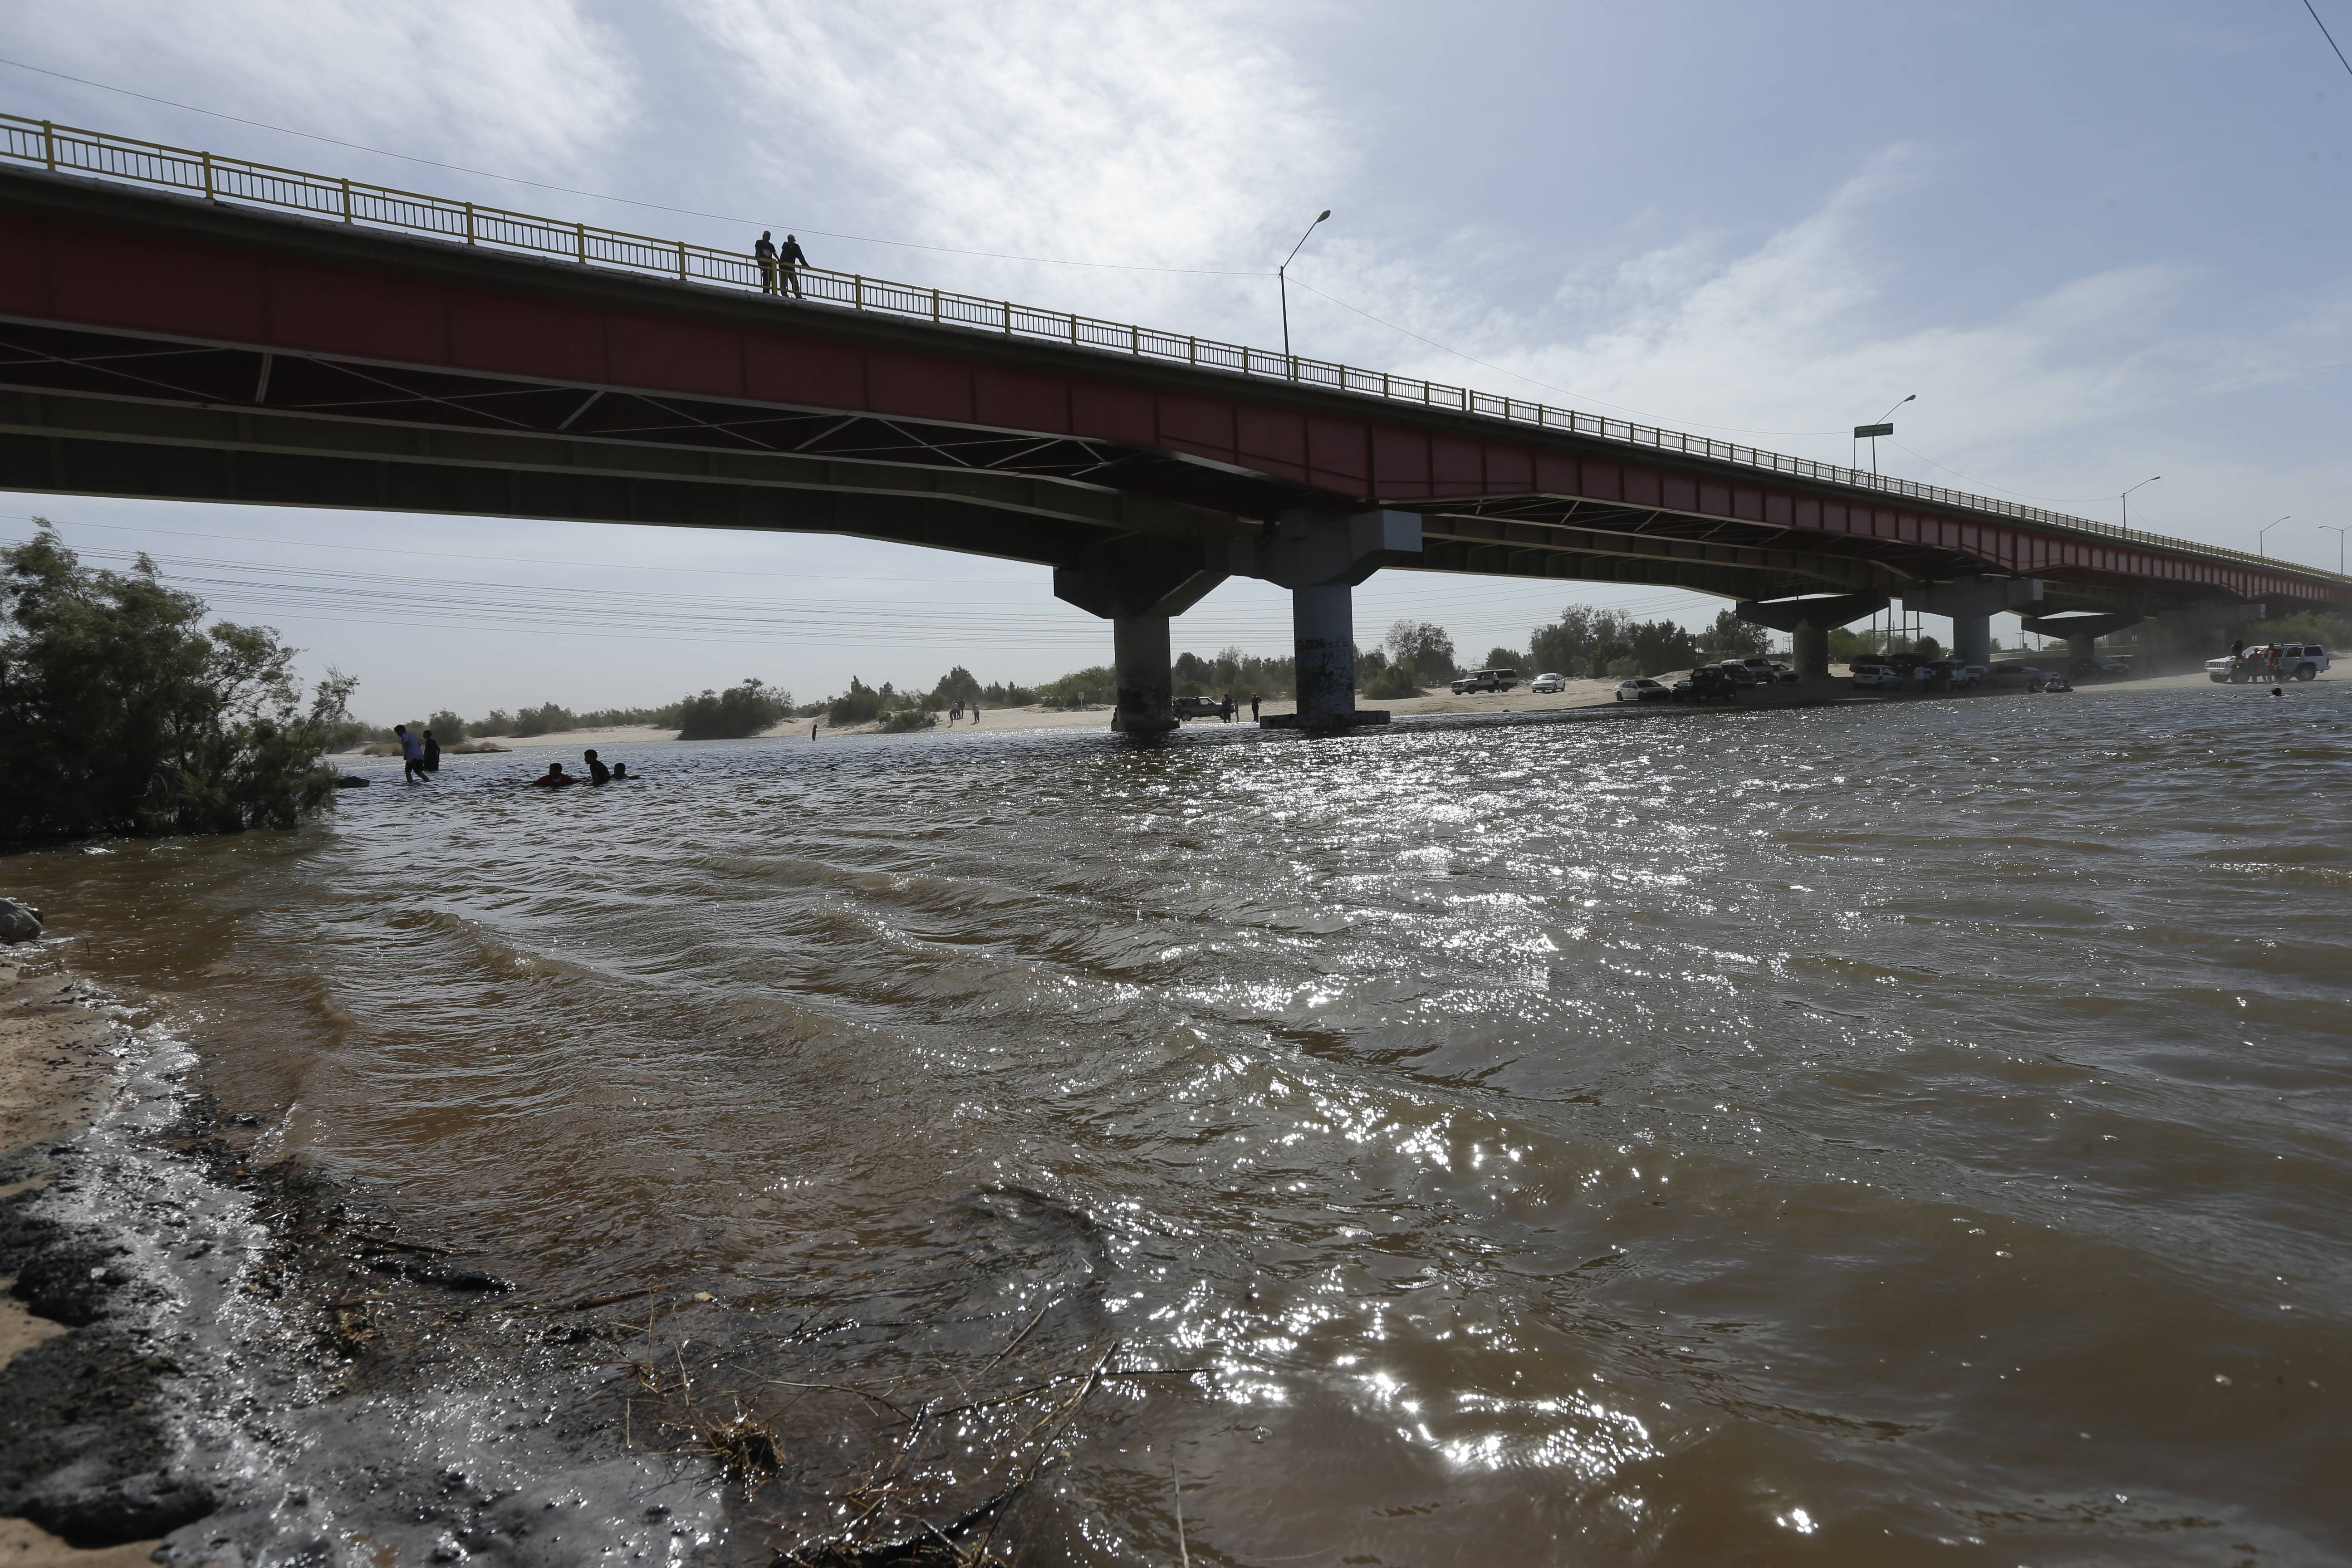 Water flows in a usually dry riverbed Wednesday in San Luis Rio Colorado, Mexico. Colorado River water has begun pouring over a barren delta near the U.S.-Mexico border, the result of a landmark bi-national agreement being celebrated Thursday.